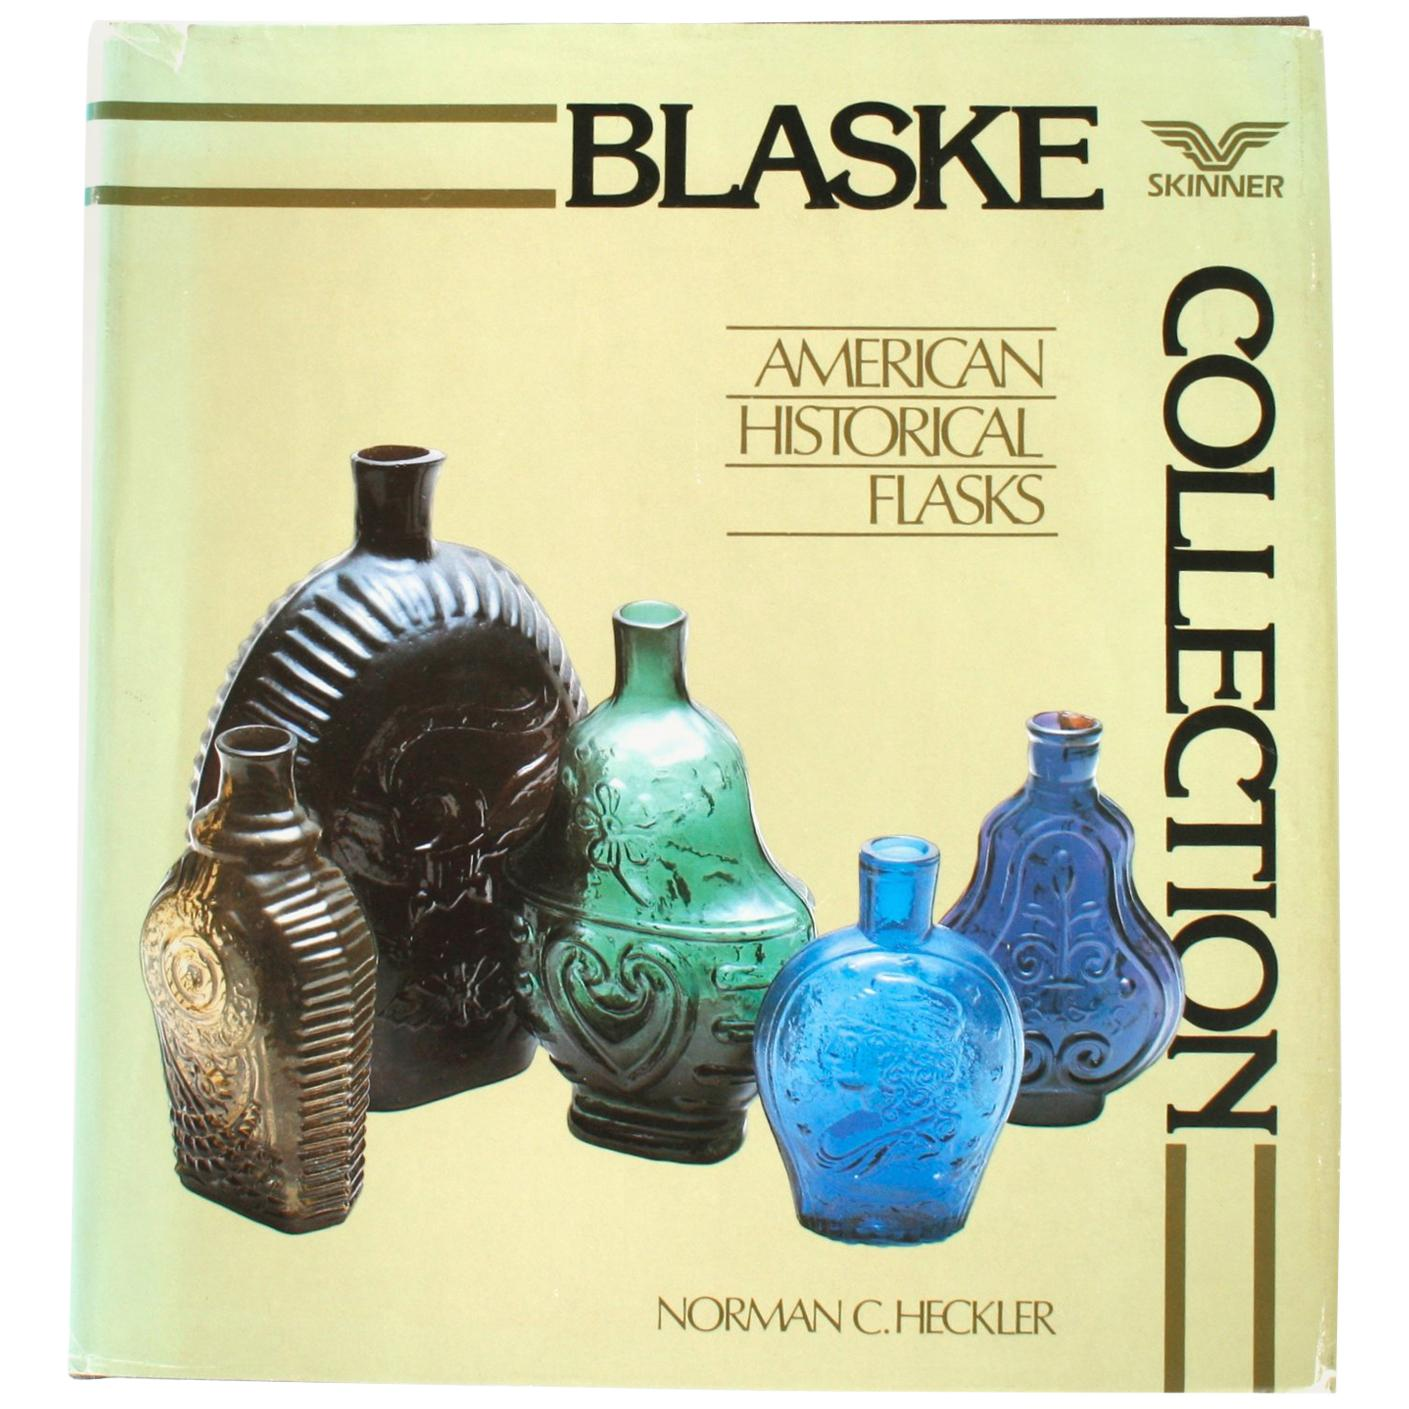 Blaske Collection American Historical Flasks by Norman C. Heckler, 1st Edition